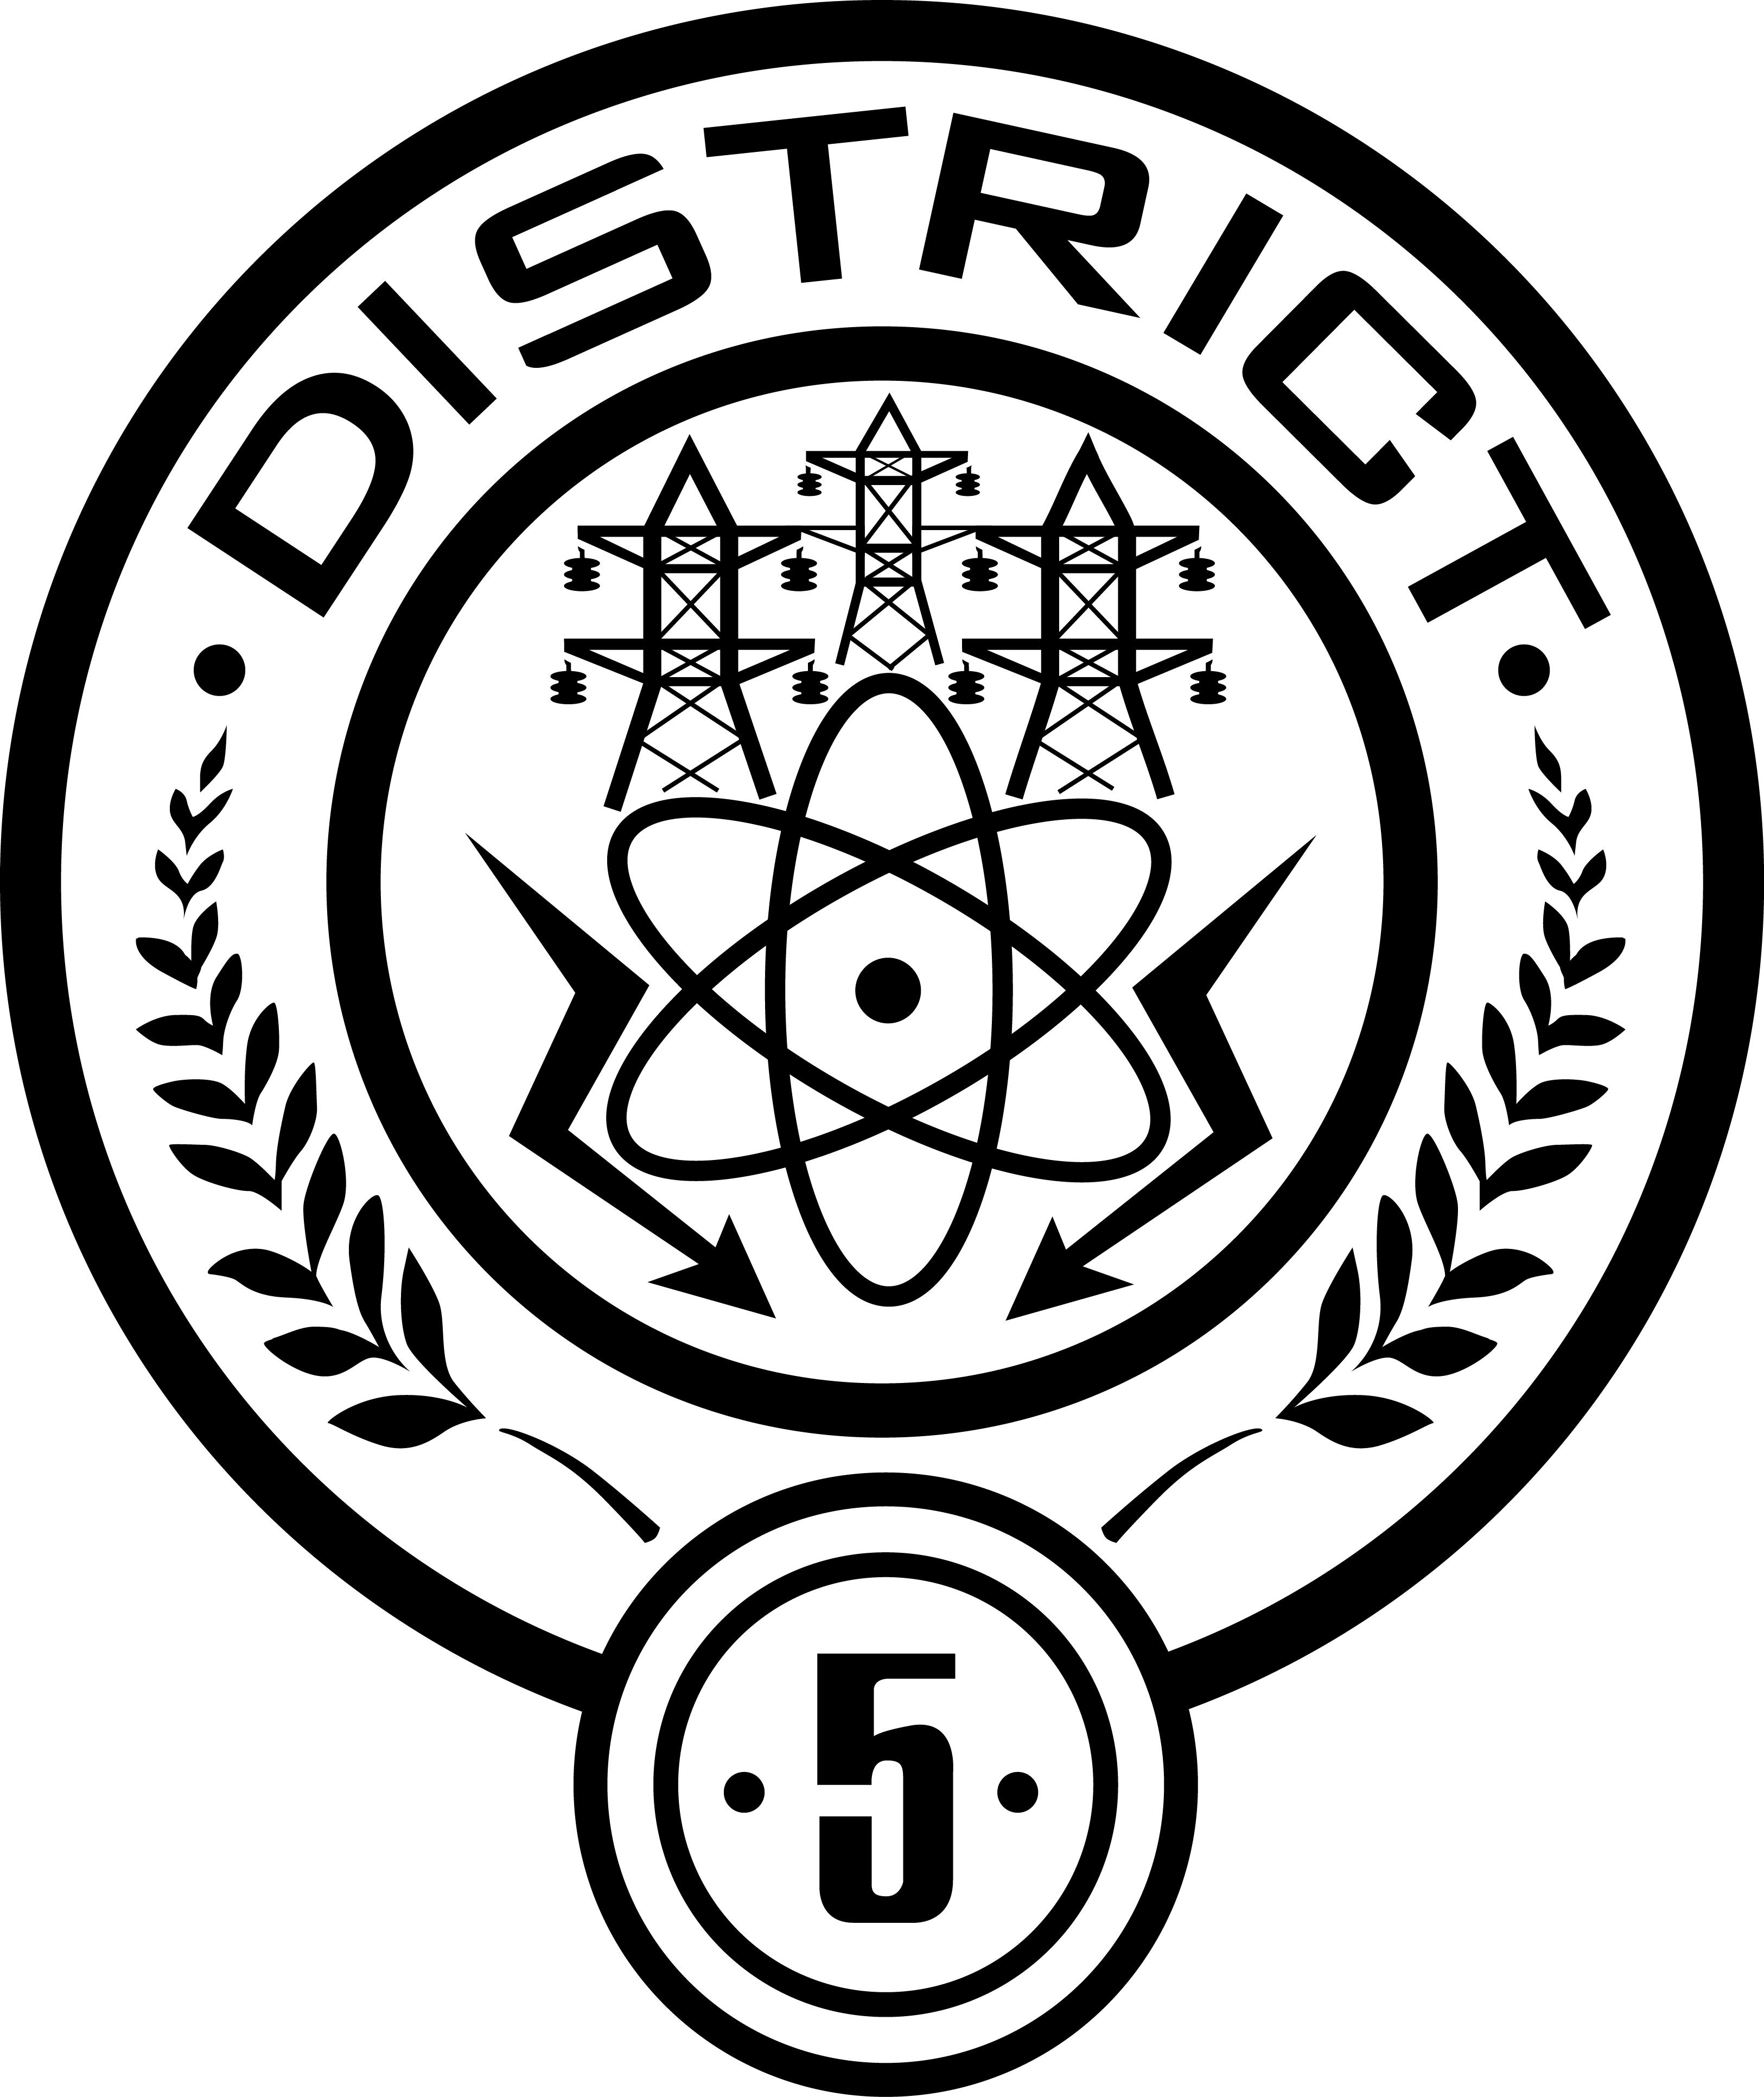 district 5 seal by trebory6 on deviantart